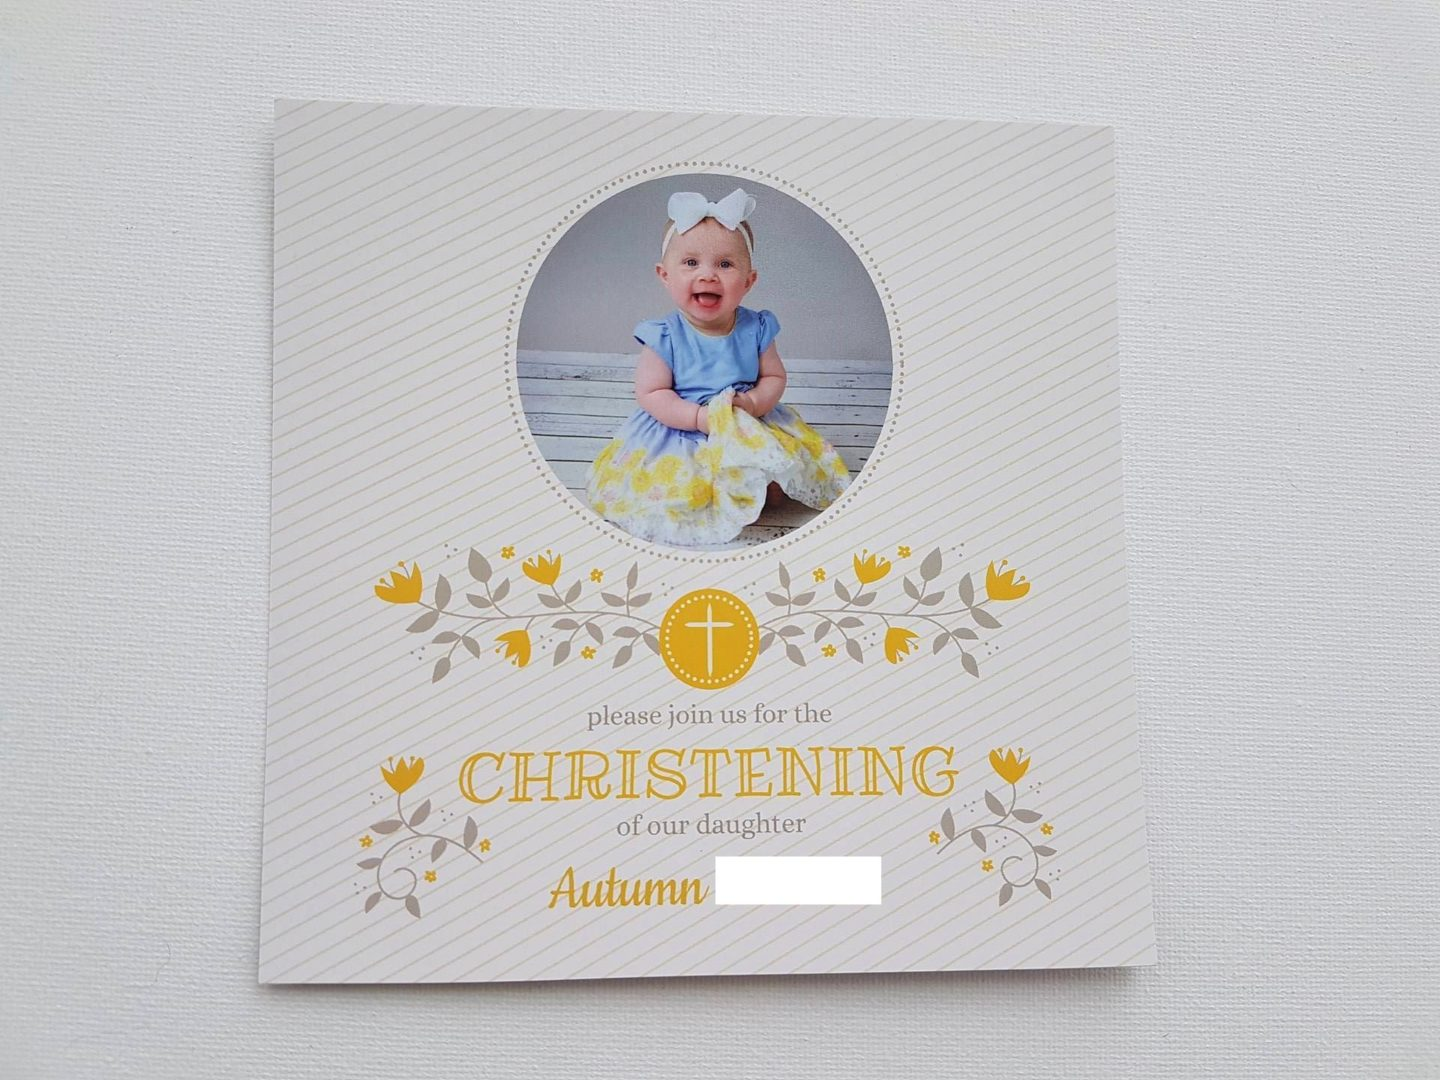 Christening invitation, front